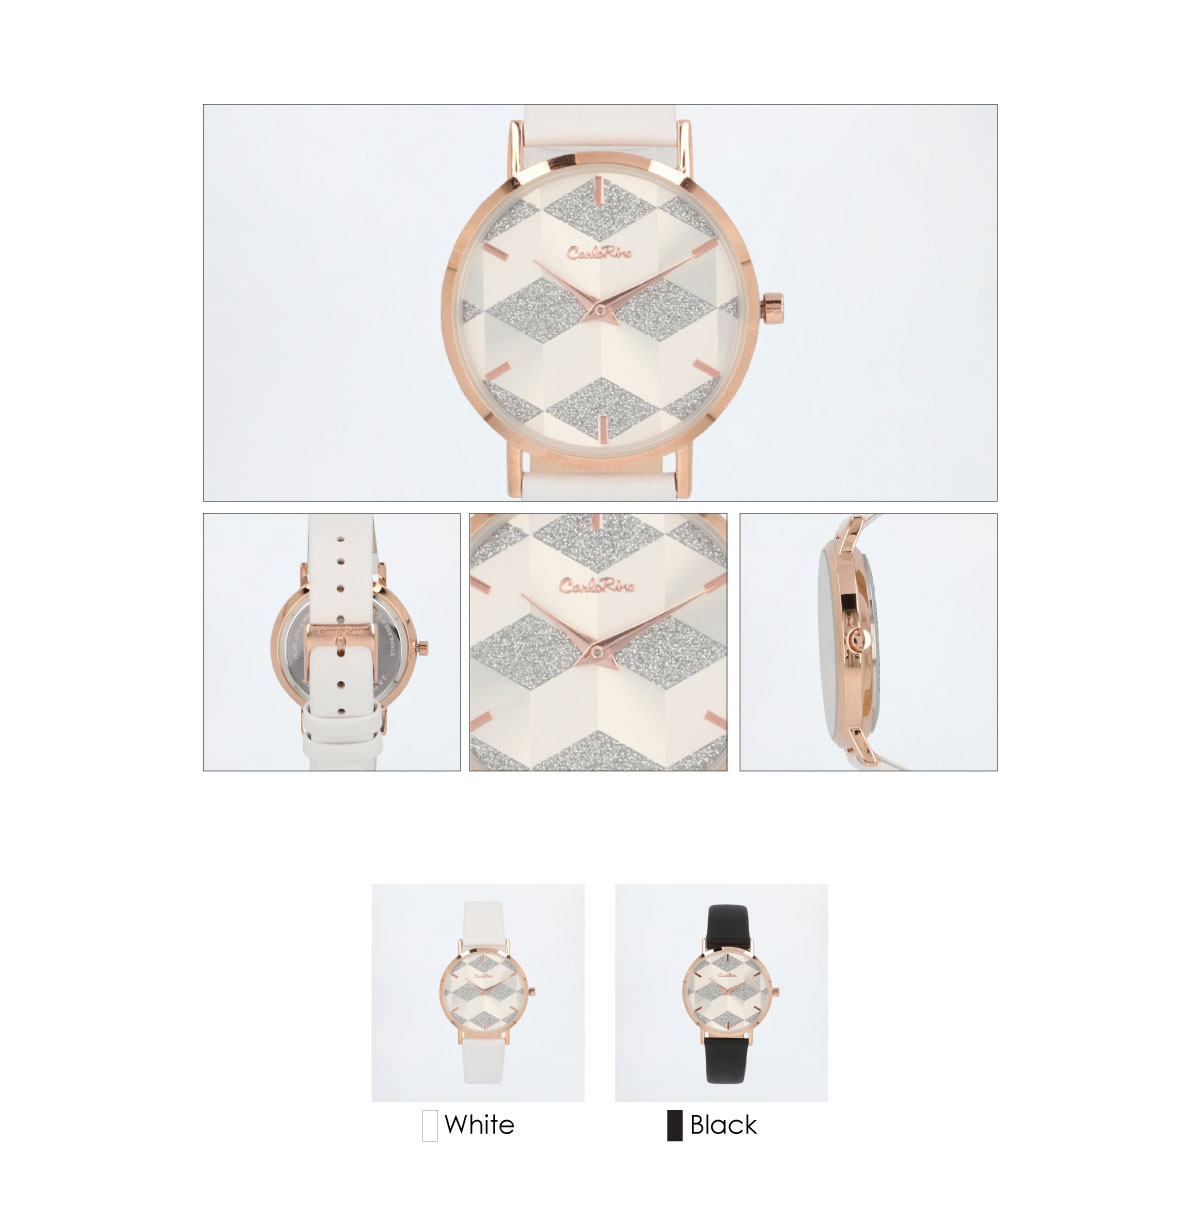 A93301 G003 03 - Women Printed Glitter Leather Strap